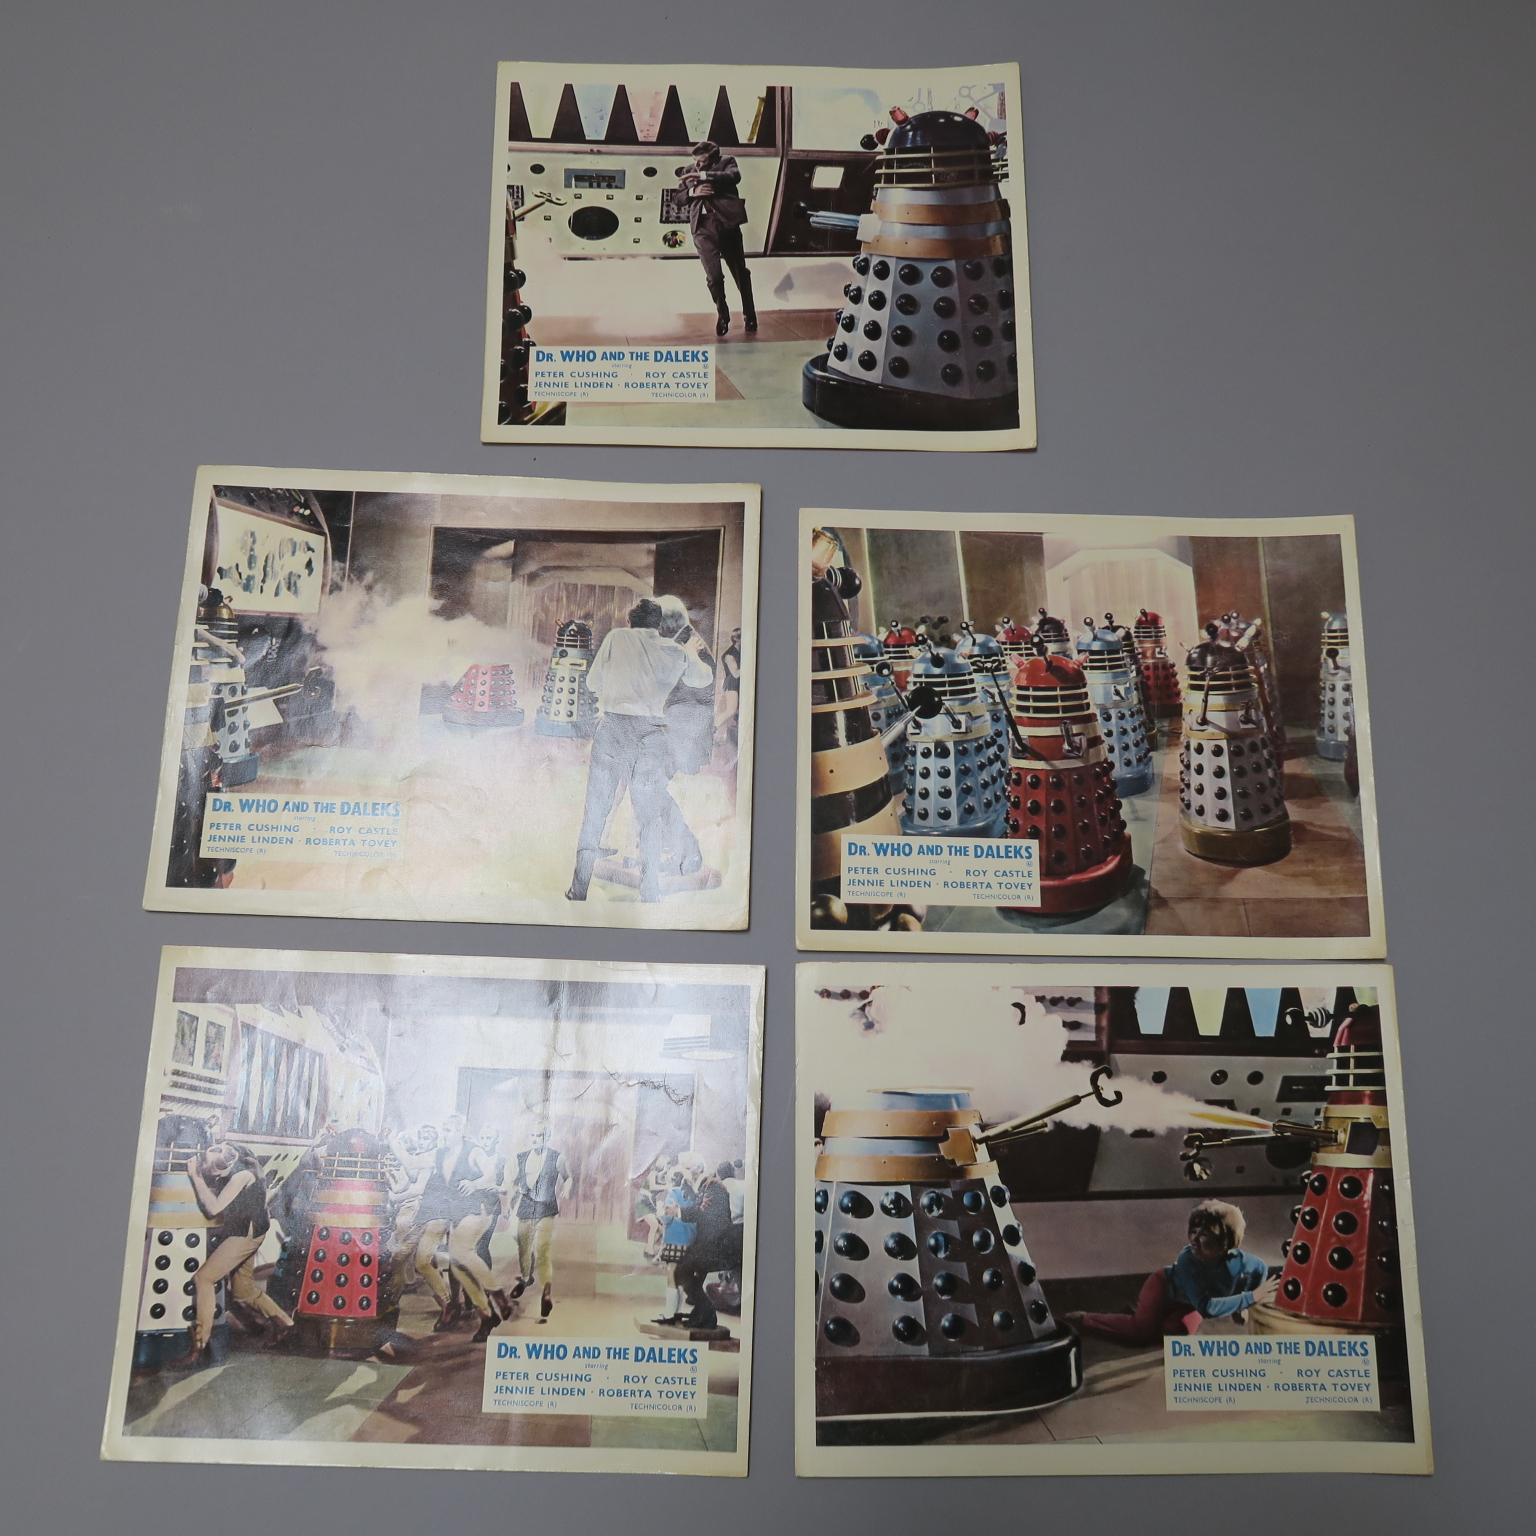 Lot 163 - Dr Who and the Daleks (1965) Five British Front of House lobby cards featuring full colour photos